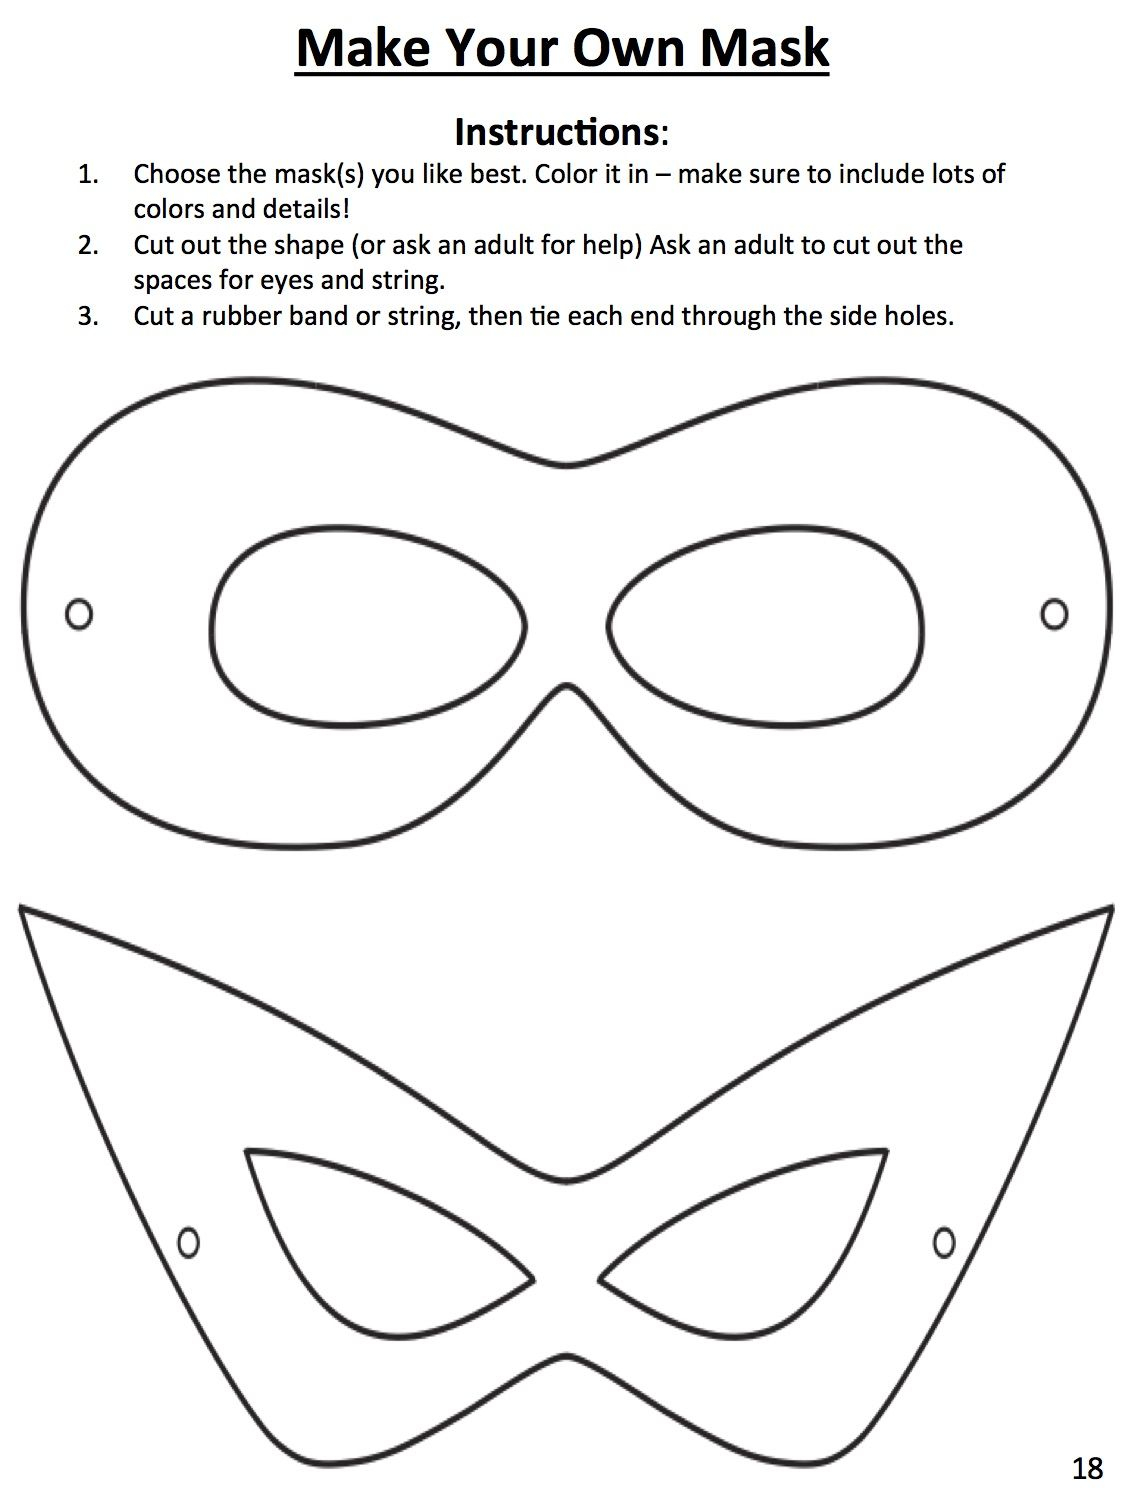 Download This Template To Design Your Own Superhero Mask